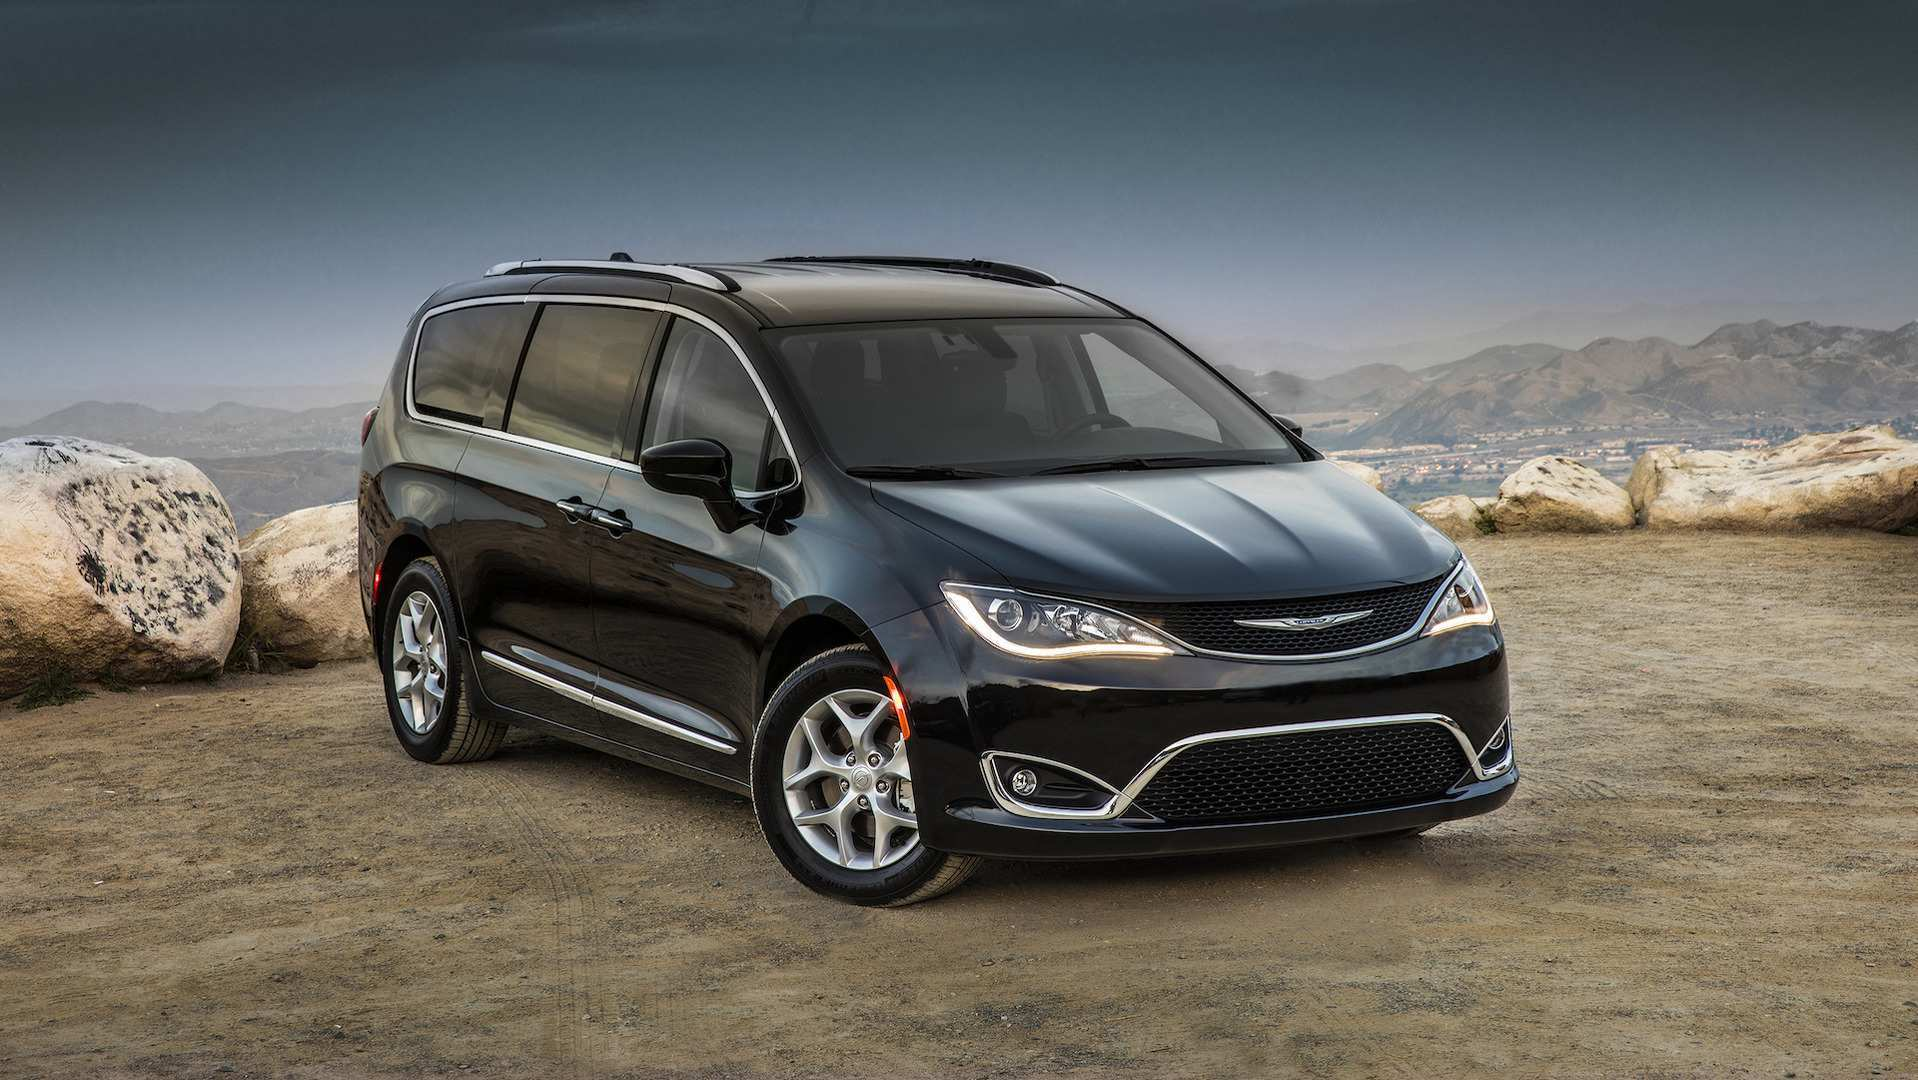 23 Best Review 2019 Chrysler Pacifica Review Price by 2019 Chrysler Pacifica Review